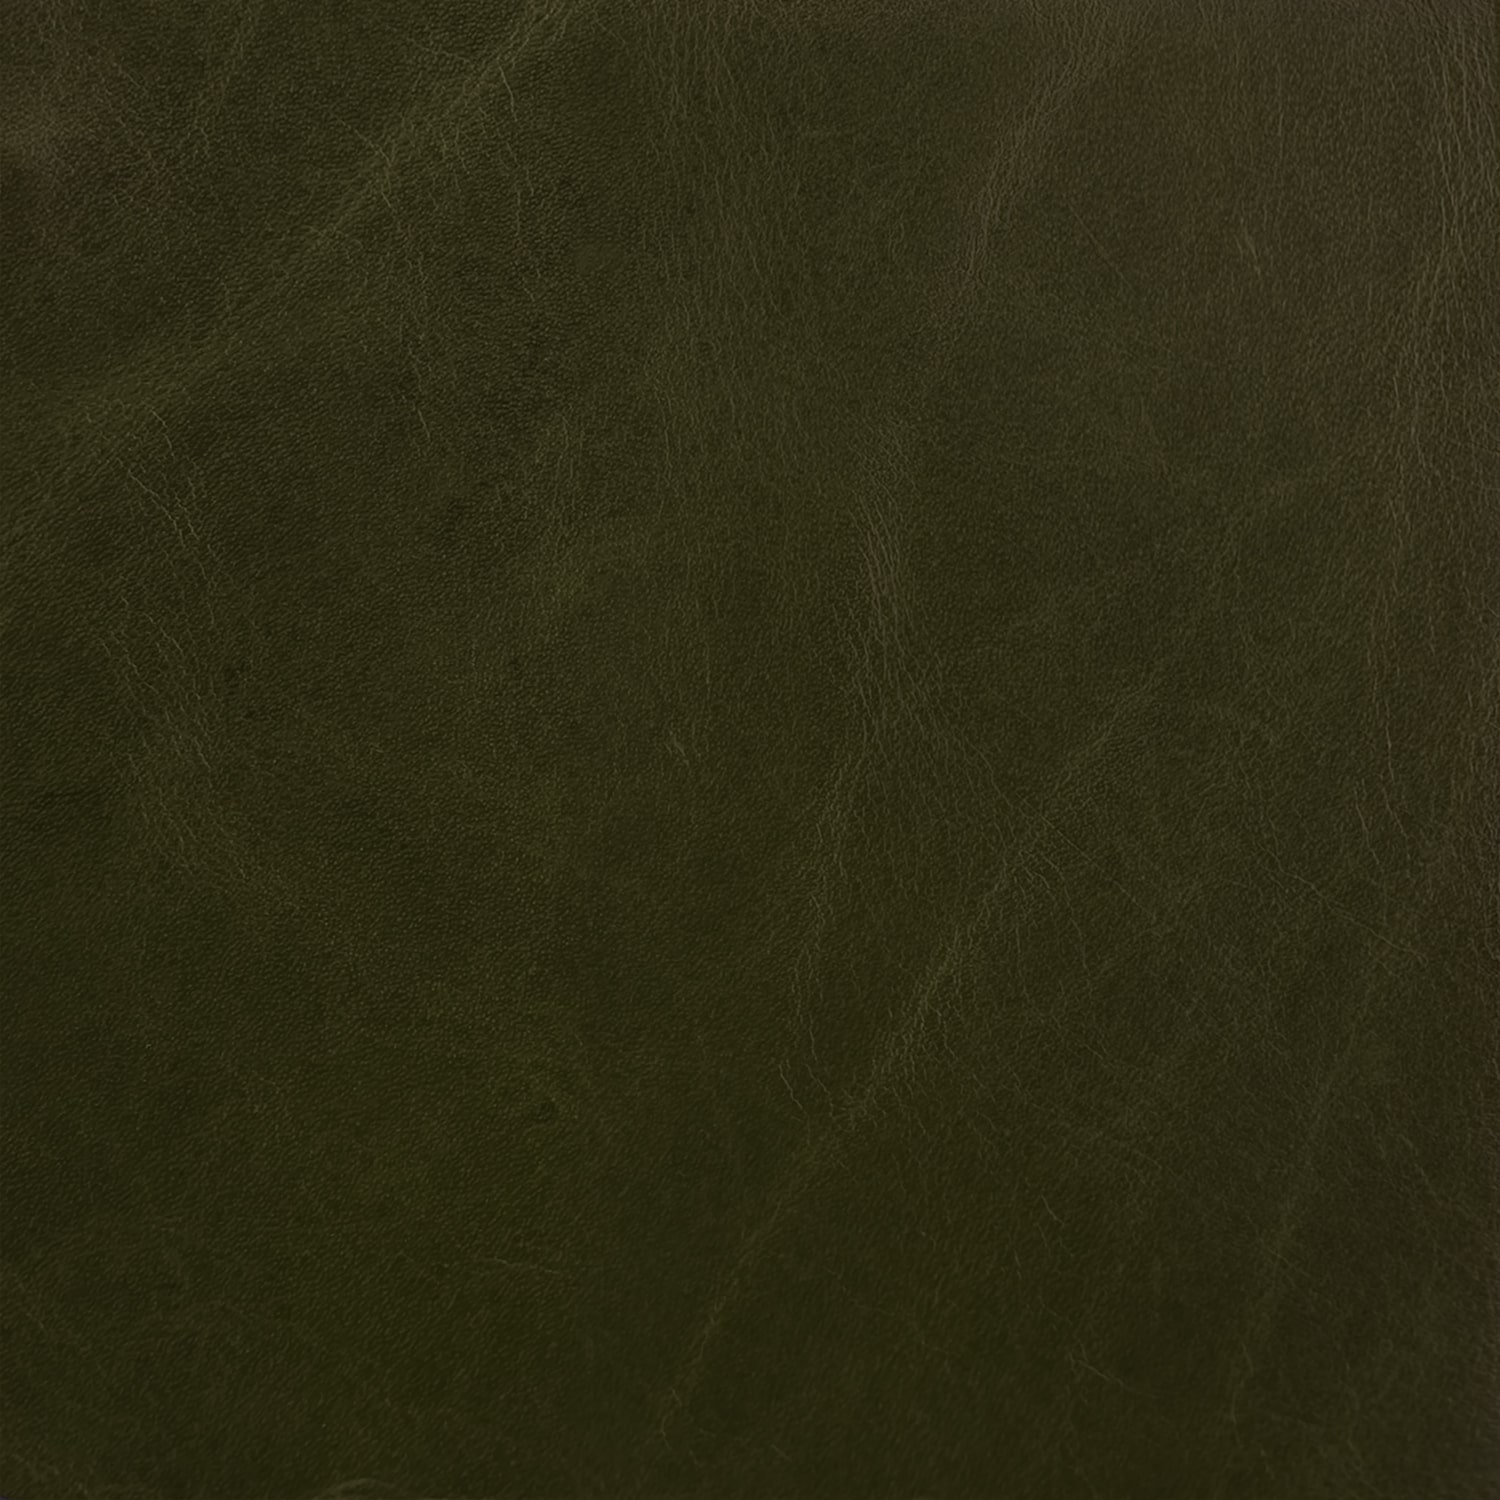 Flagstaff: Evergreen (grade G): #FLG1815<br>Unique distressed markings, permiated with wax, rich vibrant color; light protection